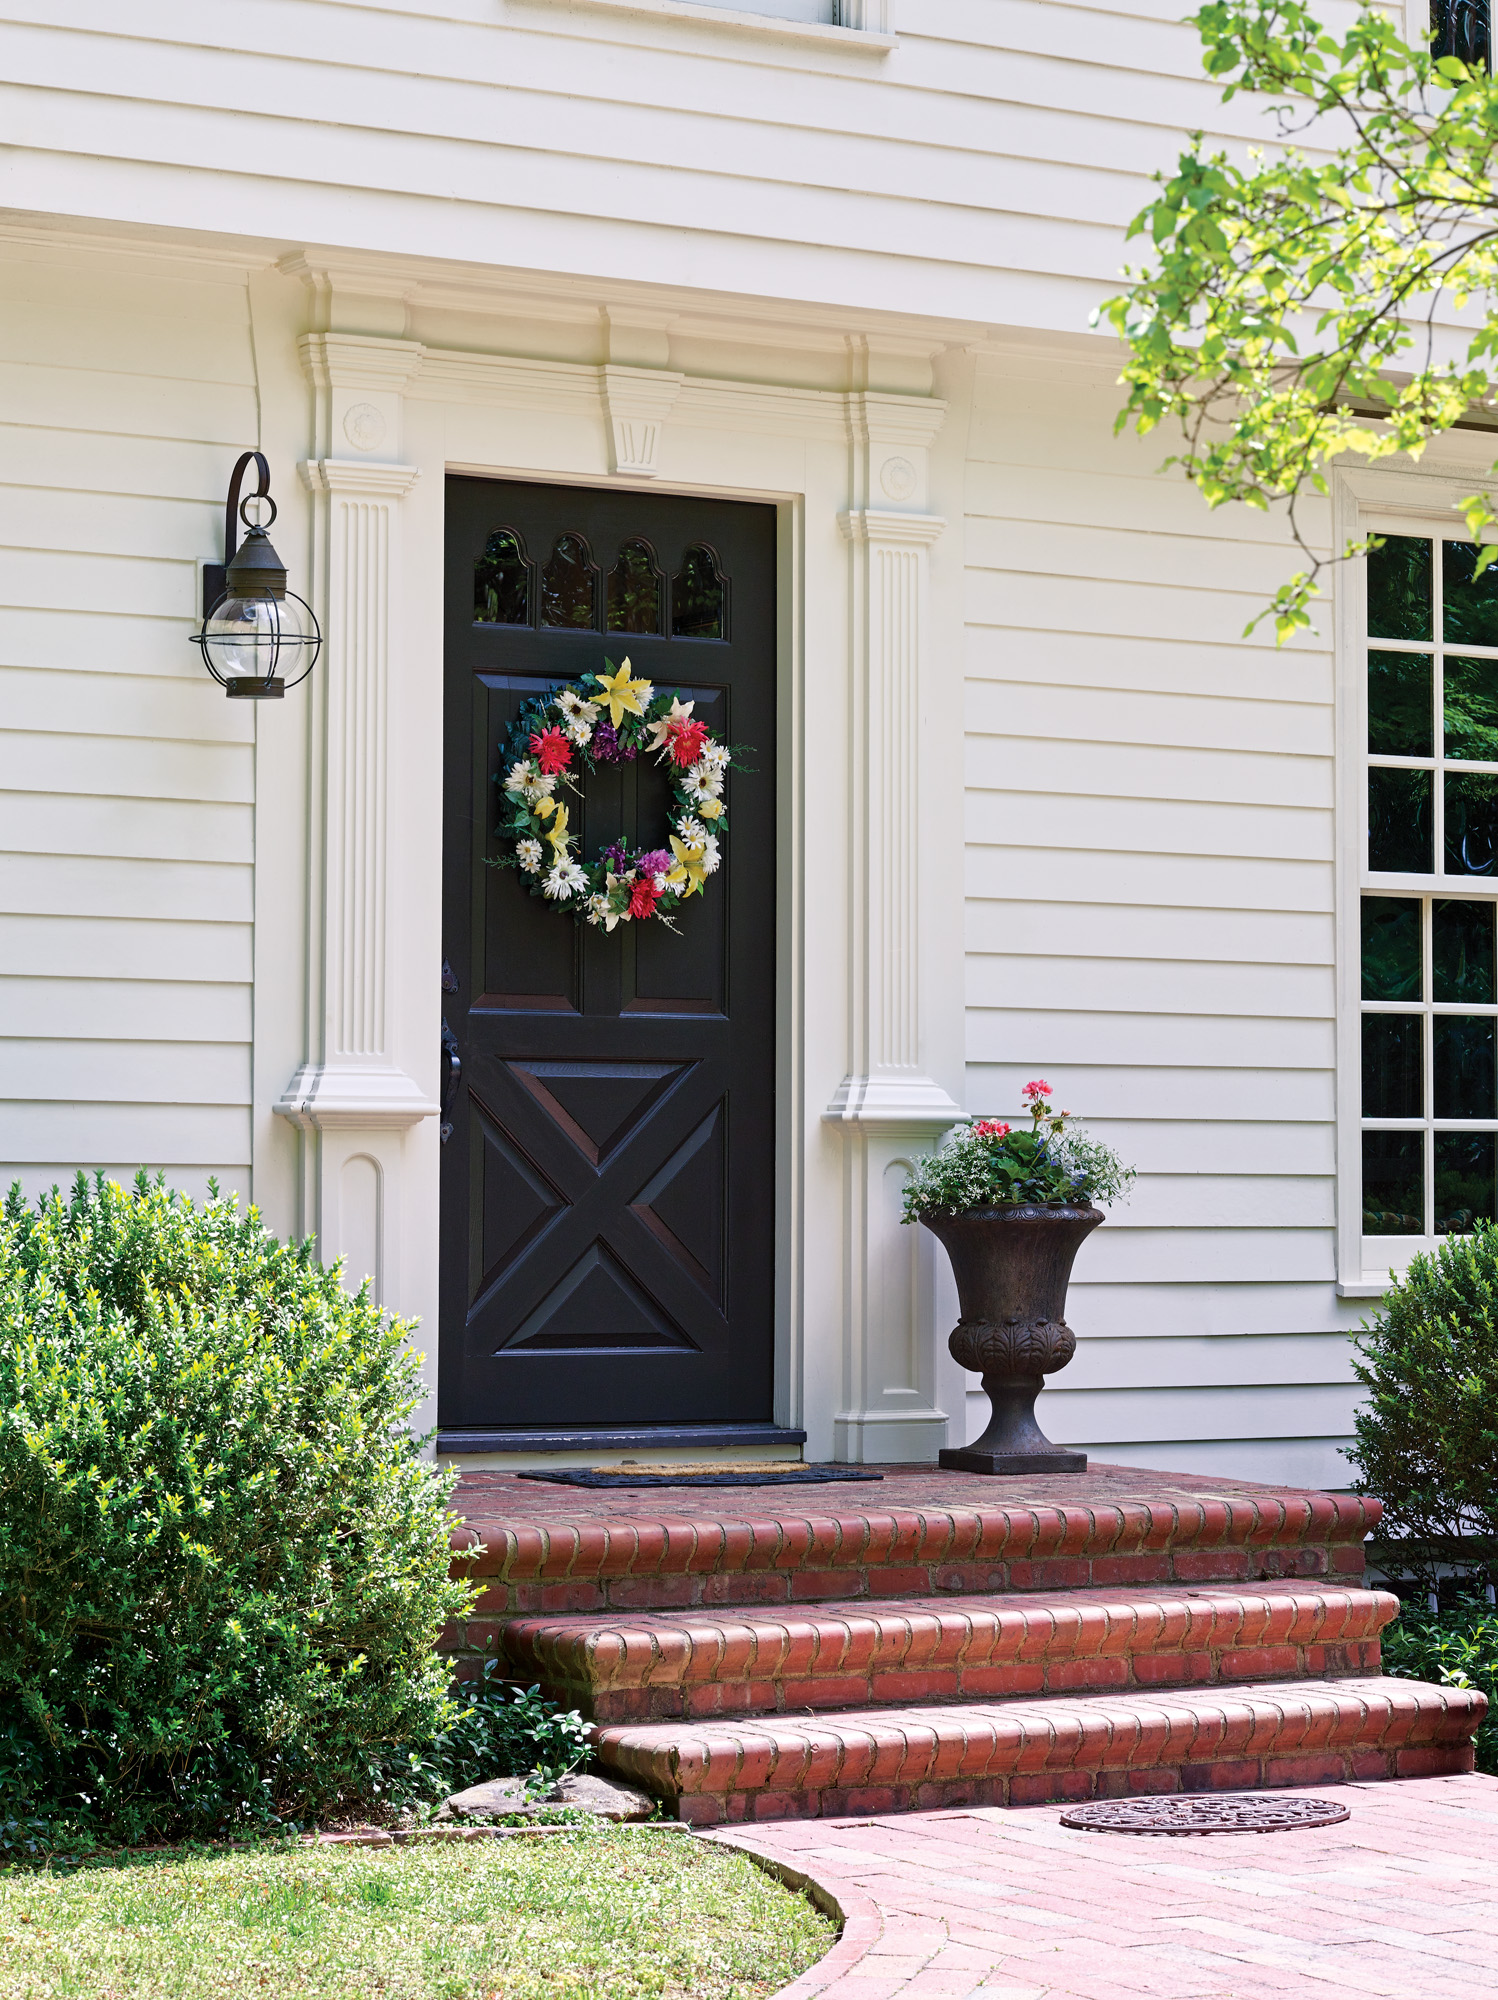 A very plain entry door was replaced with this Colonial Revival surround and batten door.